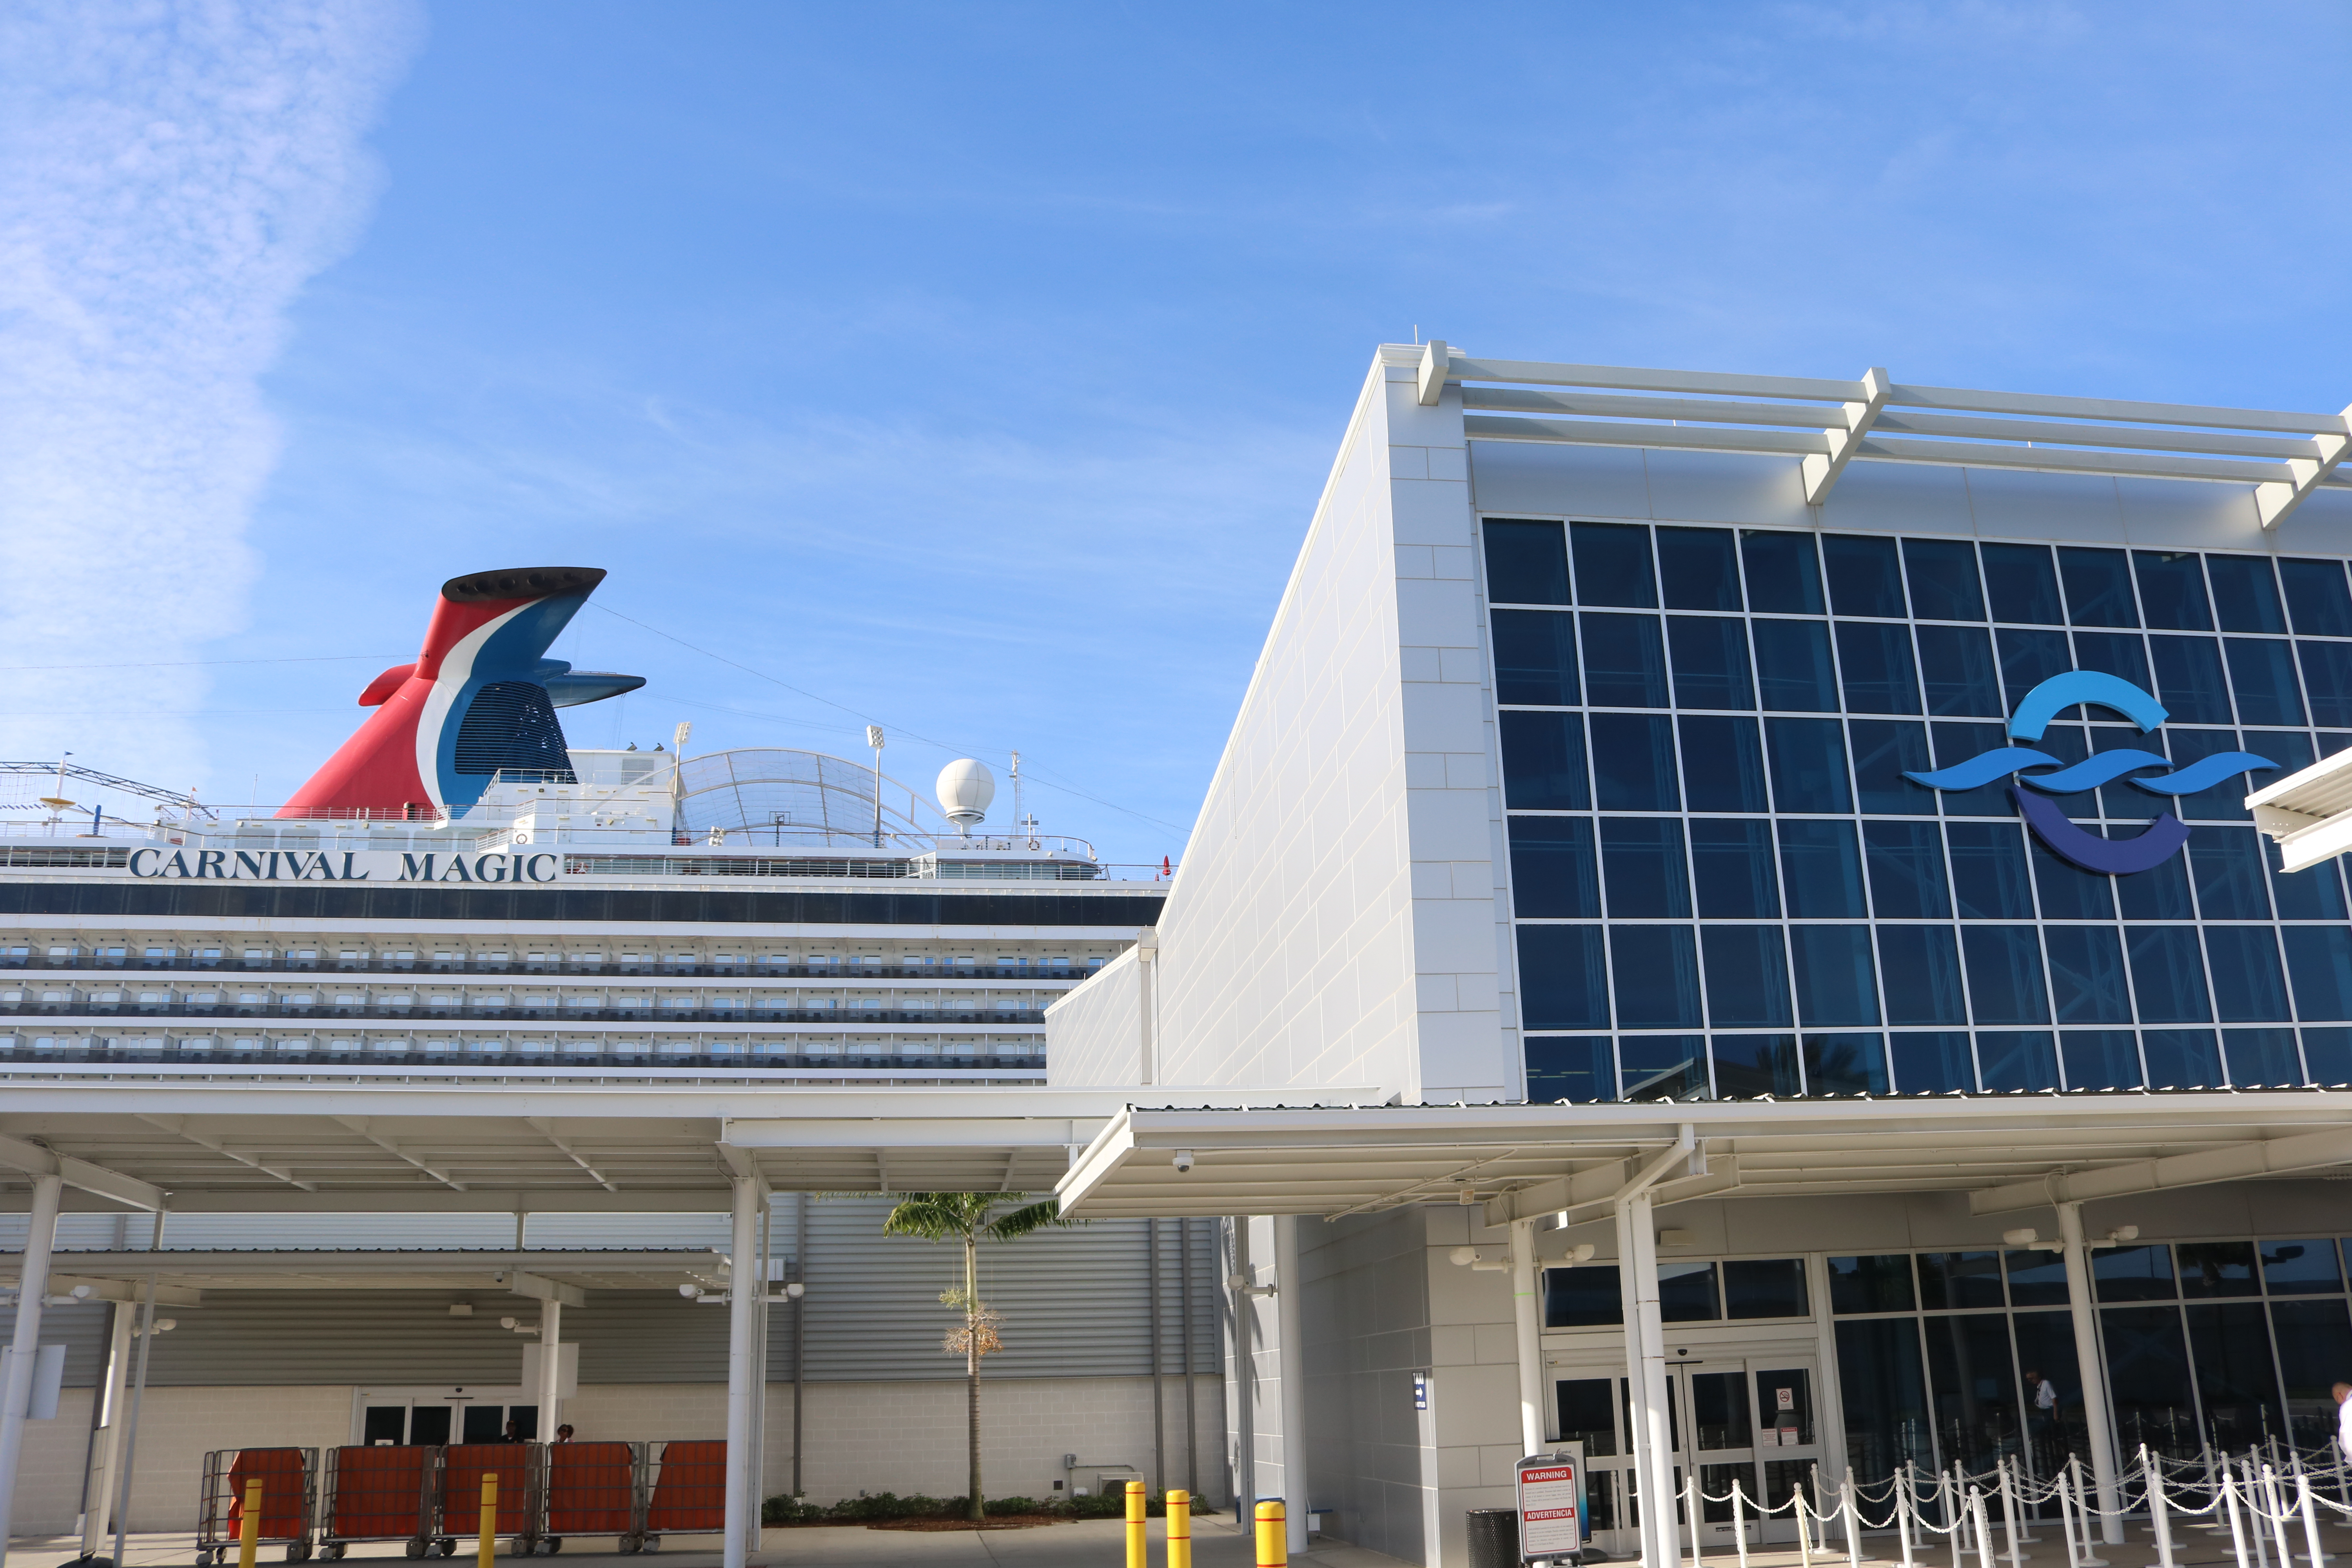 Arrival of Port Canaveral's Newest Cruise Ship, Carnival Magic, Celebrated Today, Along With Official Grand Opening of The Ship's New Guy Fieri-Designed BBQ Restaurant